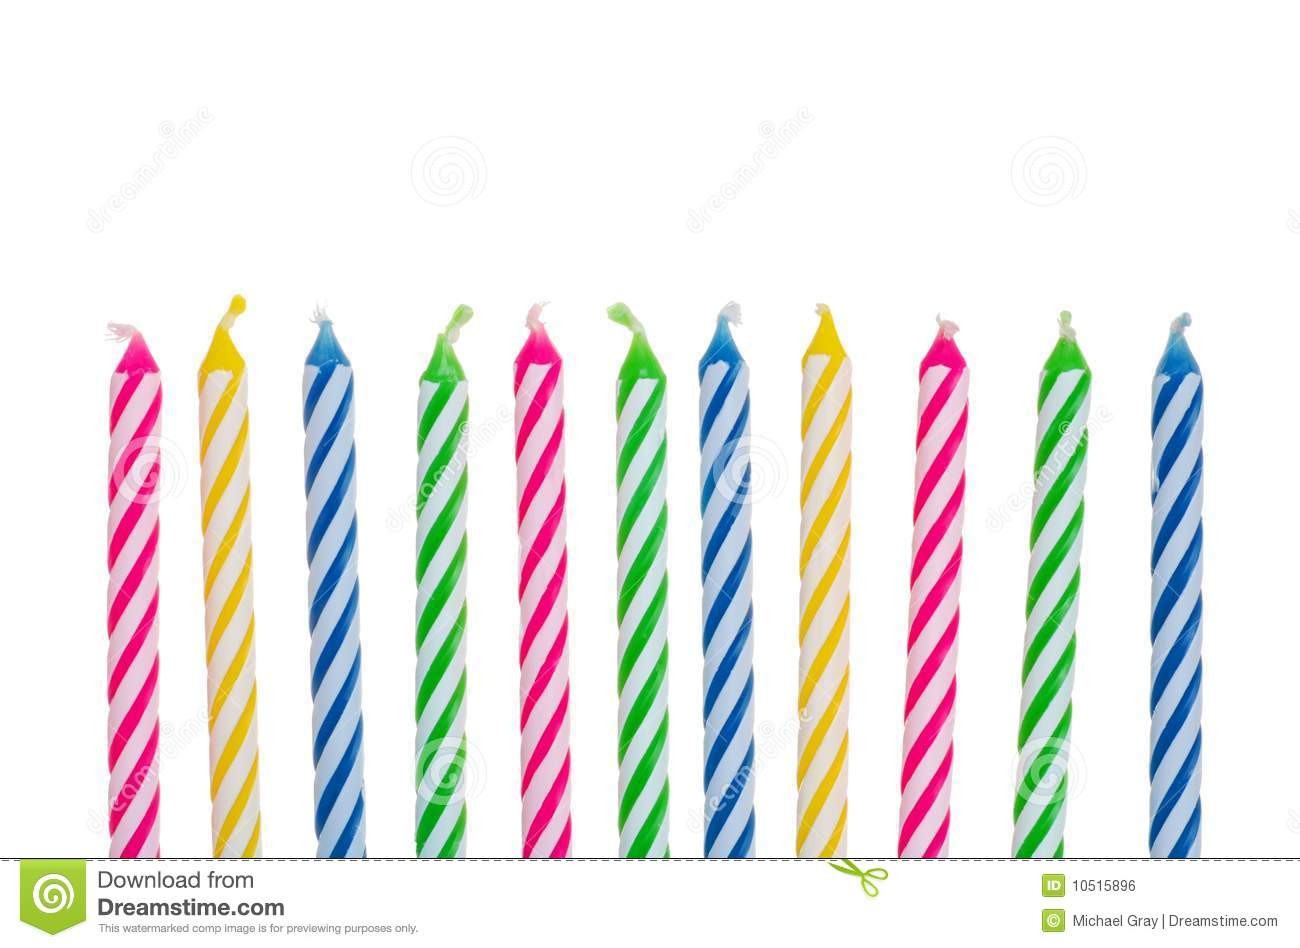 Birthday candle border clipart picture royalty free library Birthday candle border clipart - ClipartFest picture royalty free library